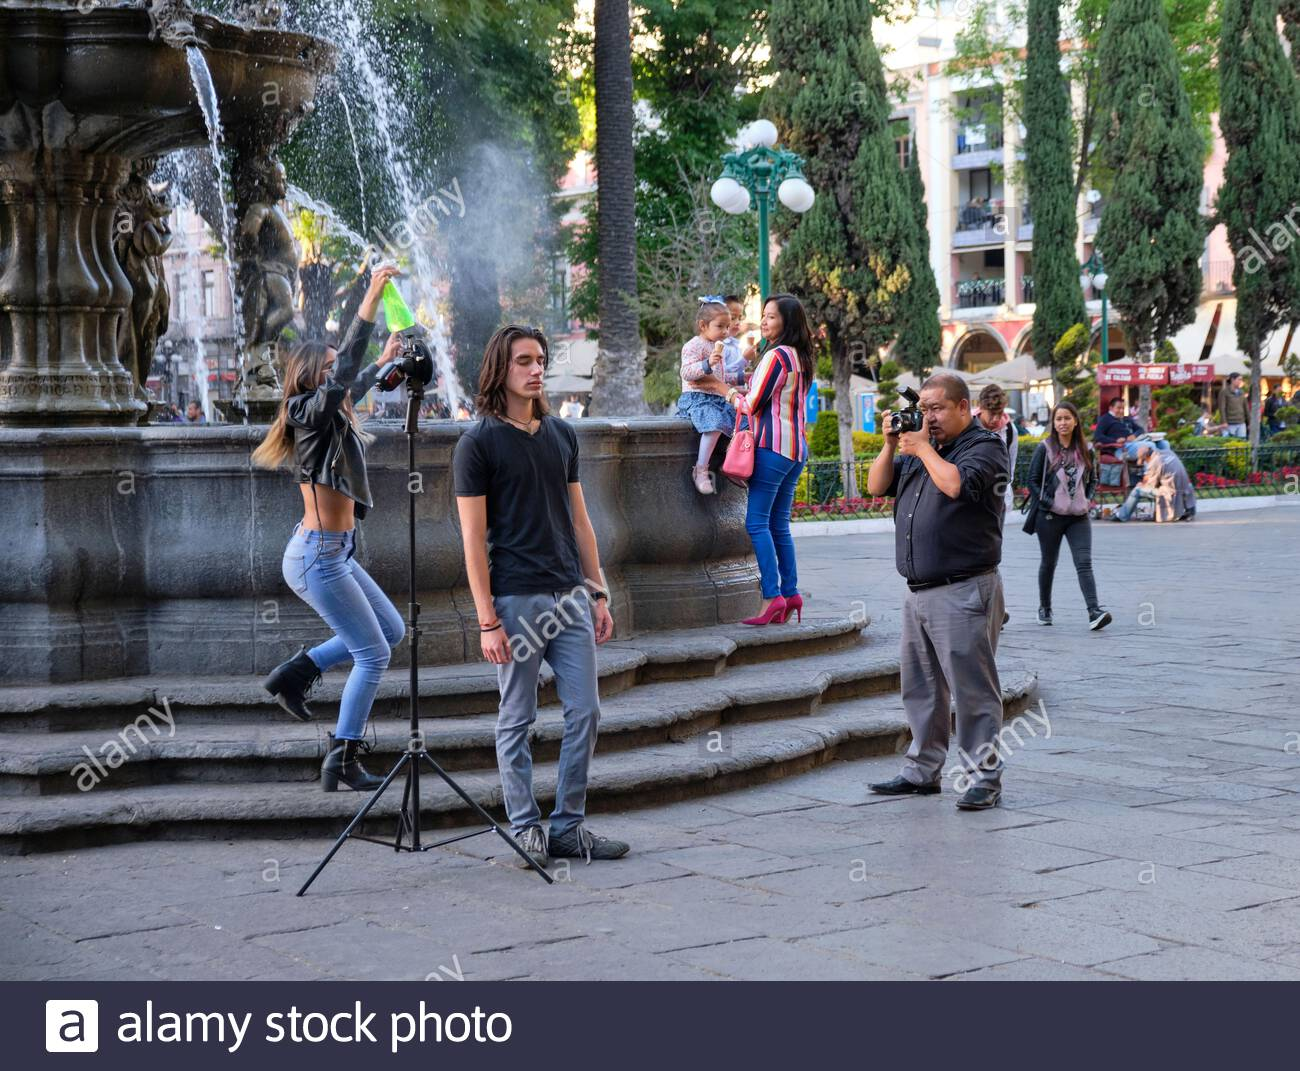 male-model-posing-for-photo-shoot-in-central-zocalo-while-female-assistant-sprays-a-water-mist-bottle-group-is-standing-by-a-fountain-in-puebla-2ARBMGX.jpg